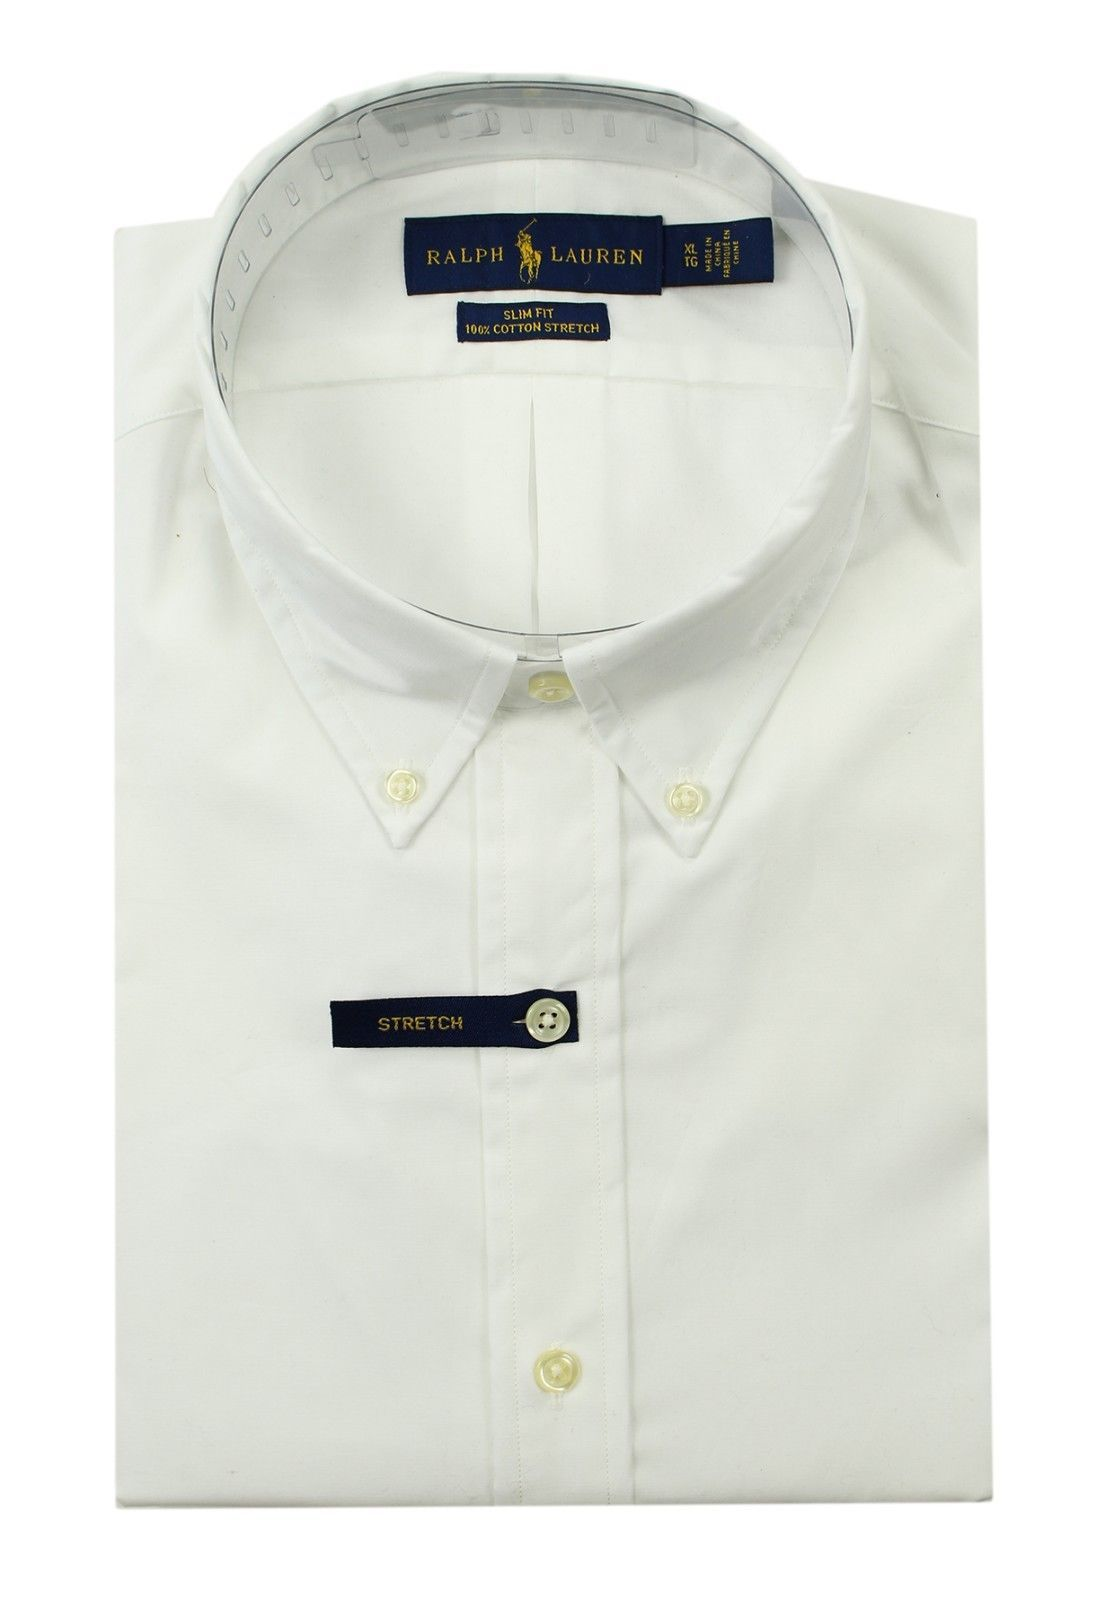 Primary image for NEW RALPH LAUREN SLIM FIT 100% COTTON STRETCH WHITE SOLID BUTTON FRONT SHIRT 2XL